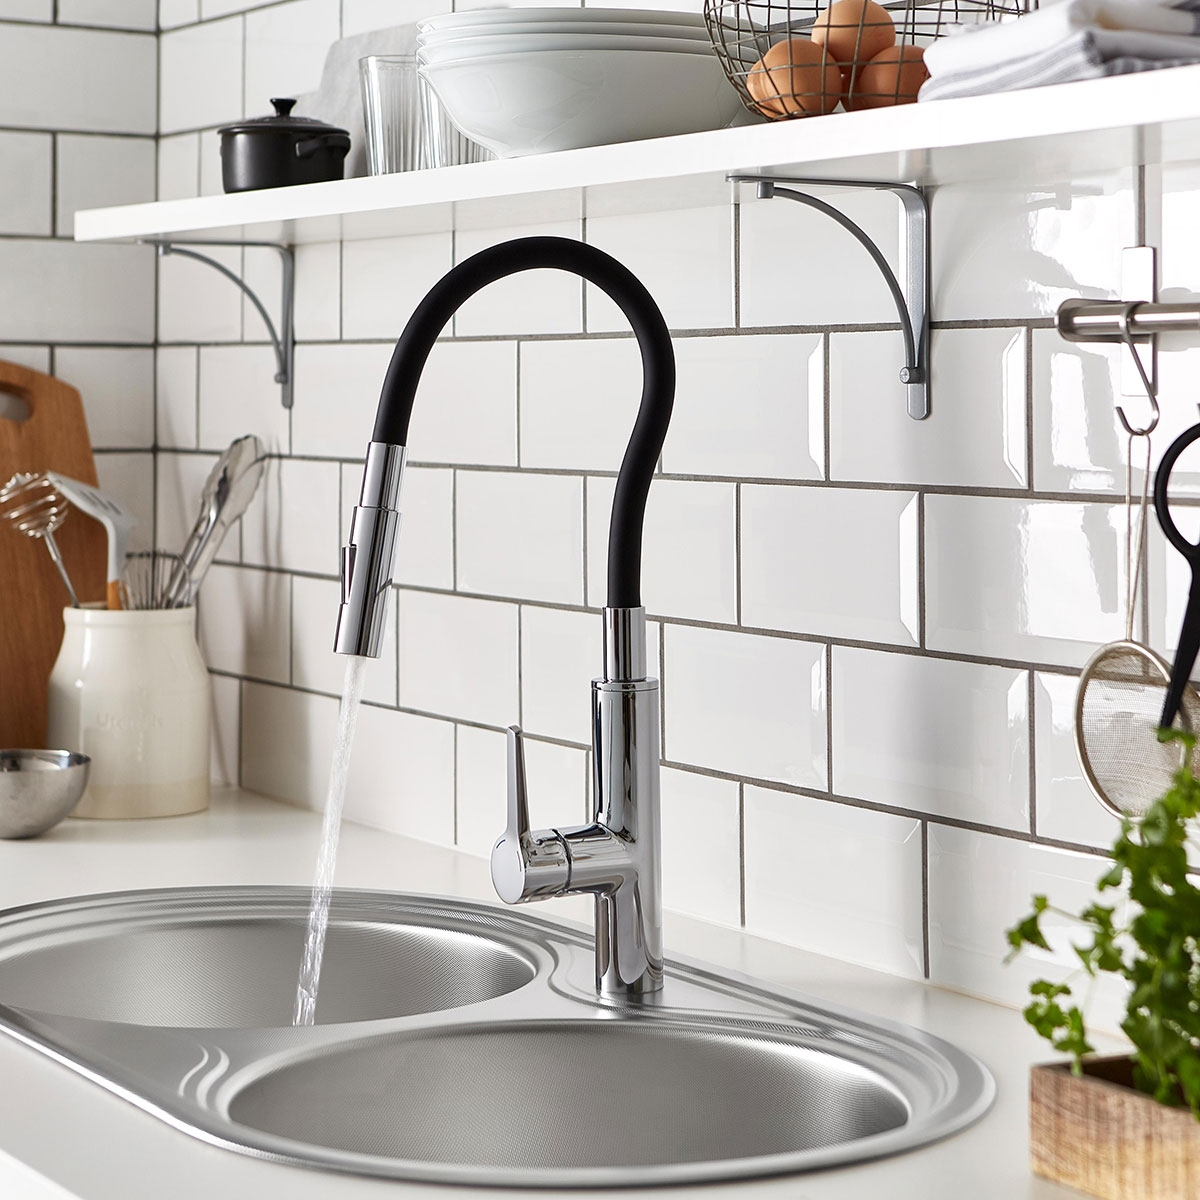 Bristan Gallery Flex Kitchen Sink Mixer Tap Single Handle - Black/Chrome